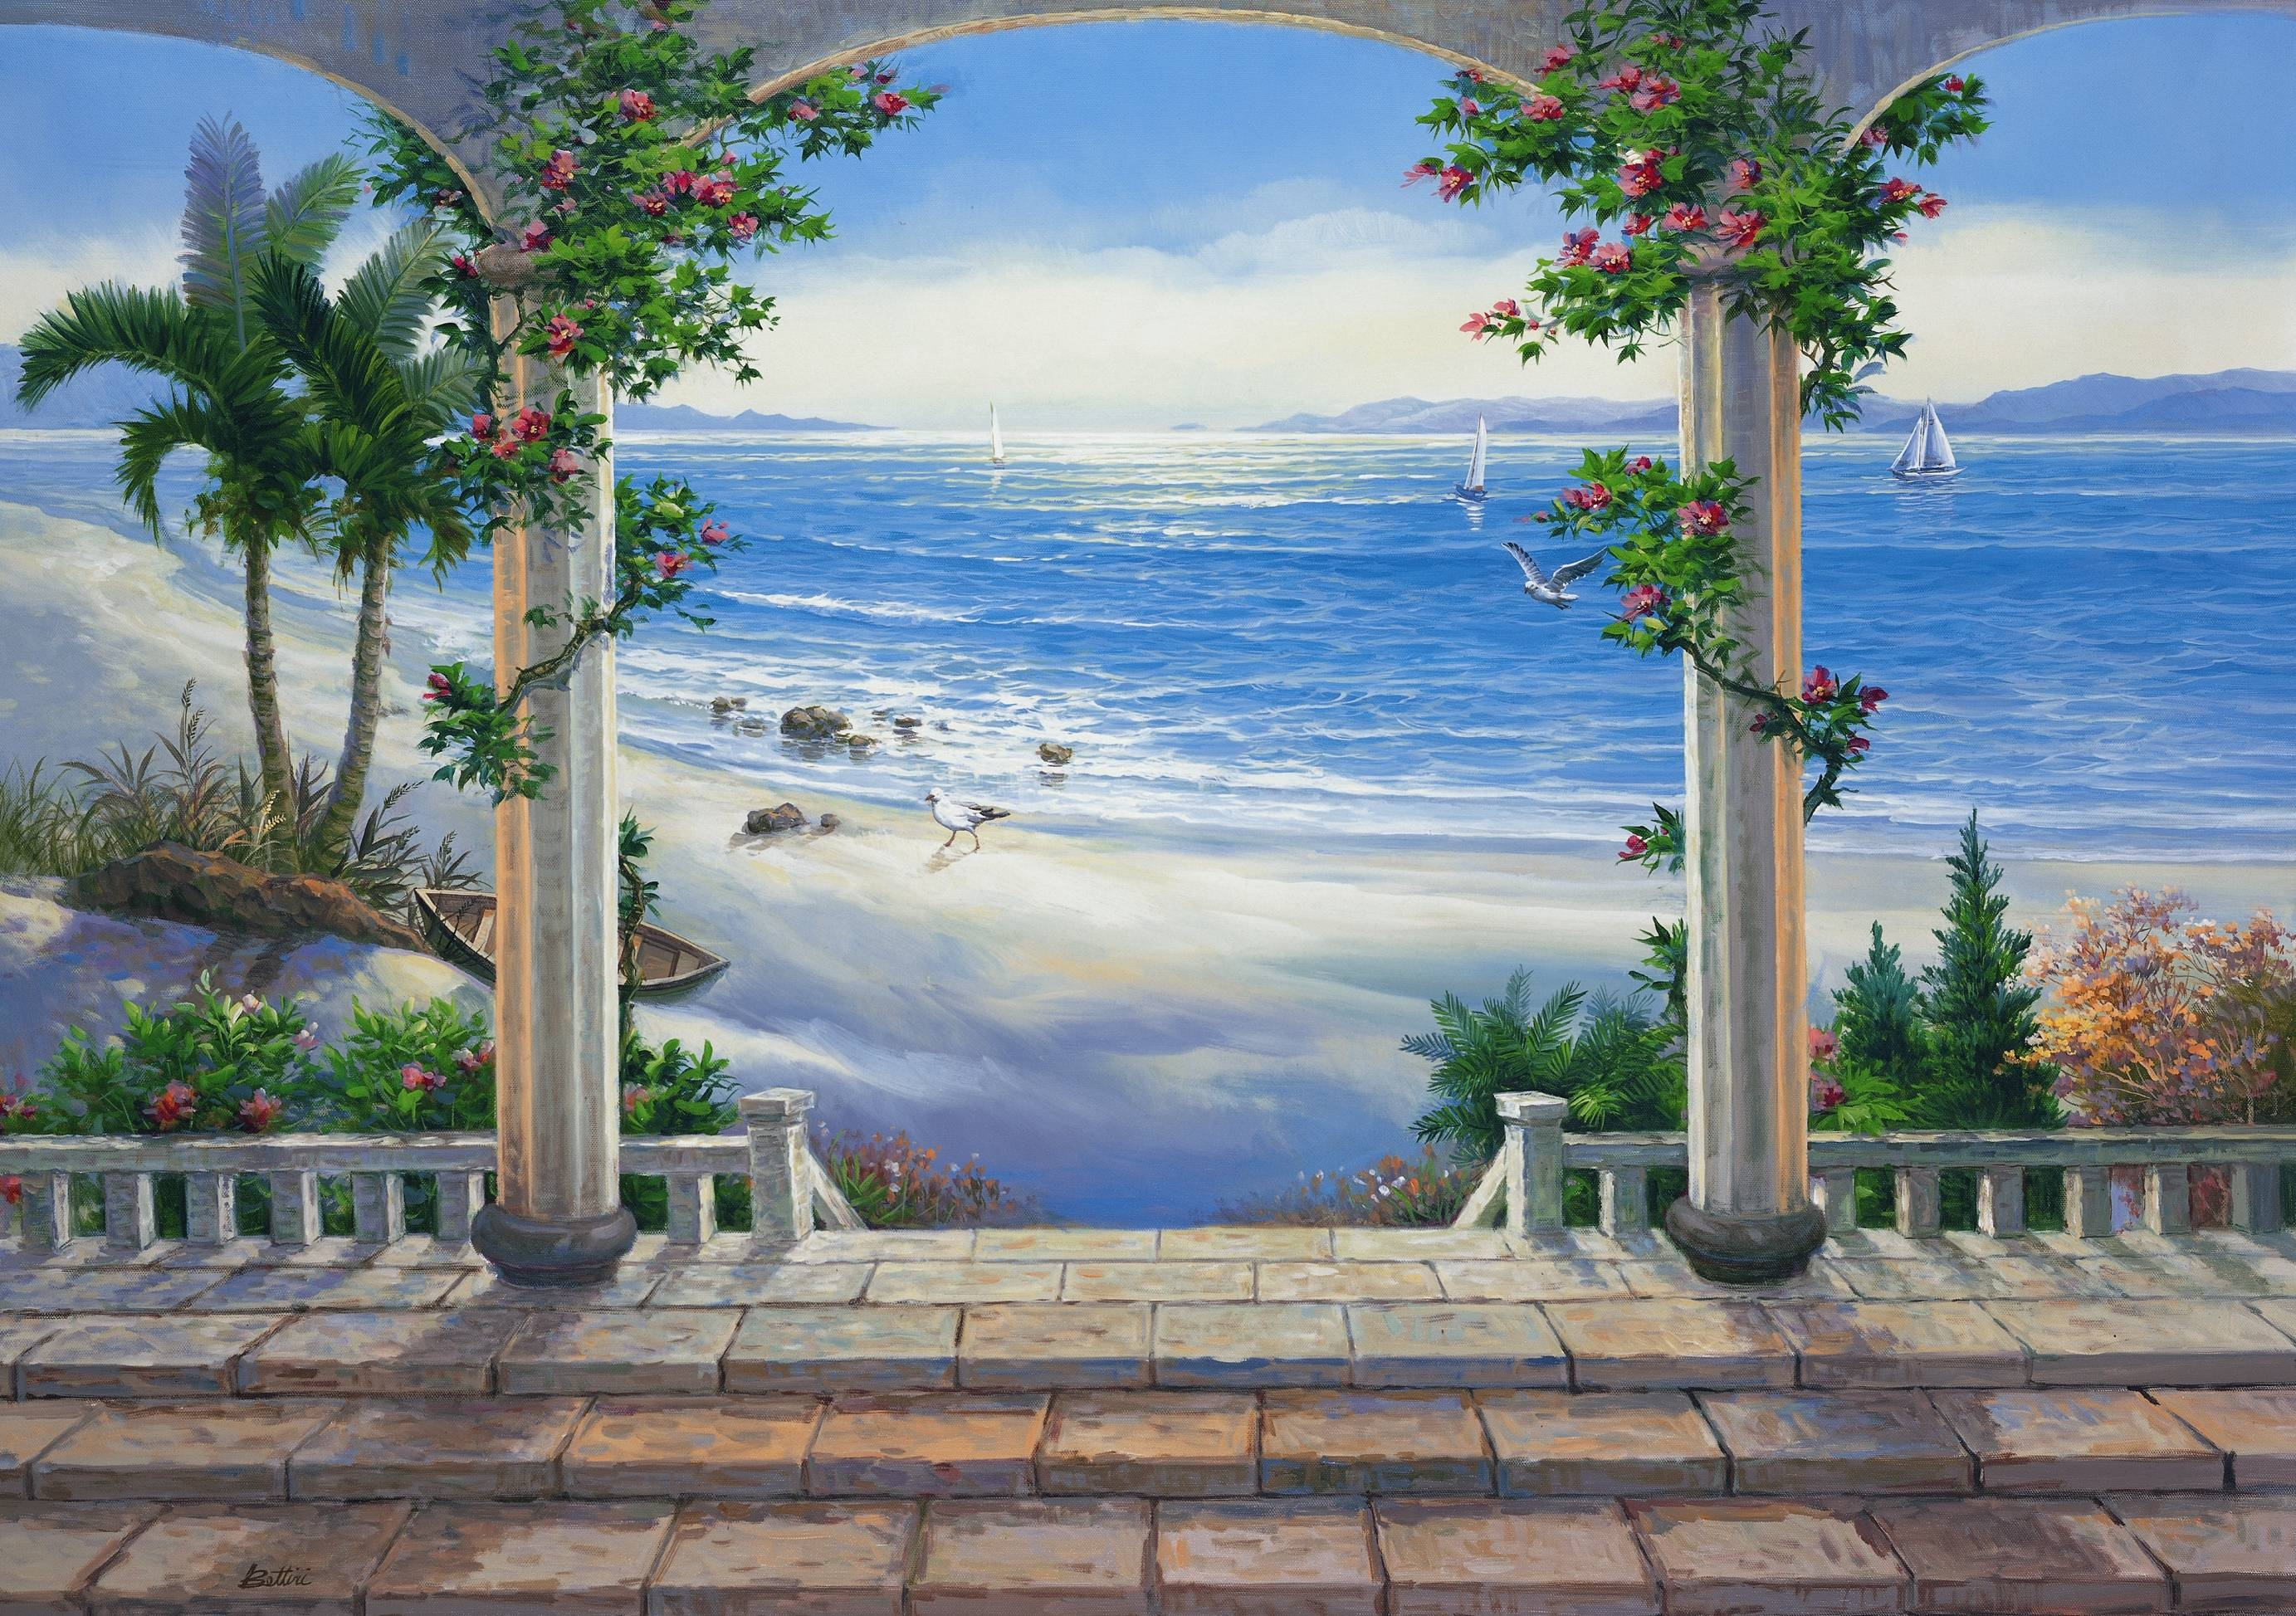 Ocean View Wall Mural Pr1813 In Latest 3D Wall Art Wallpaper (View 19 of 20)